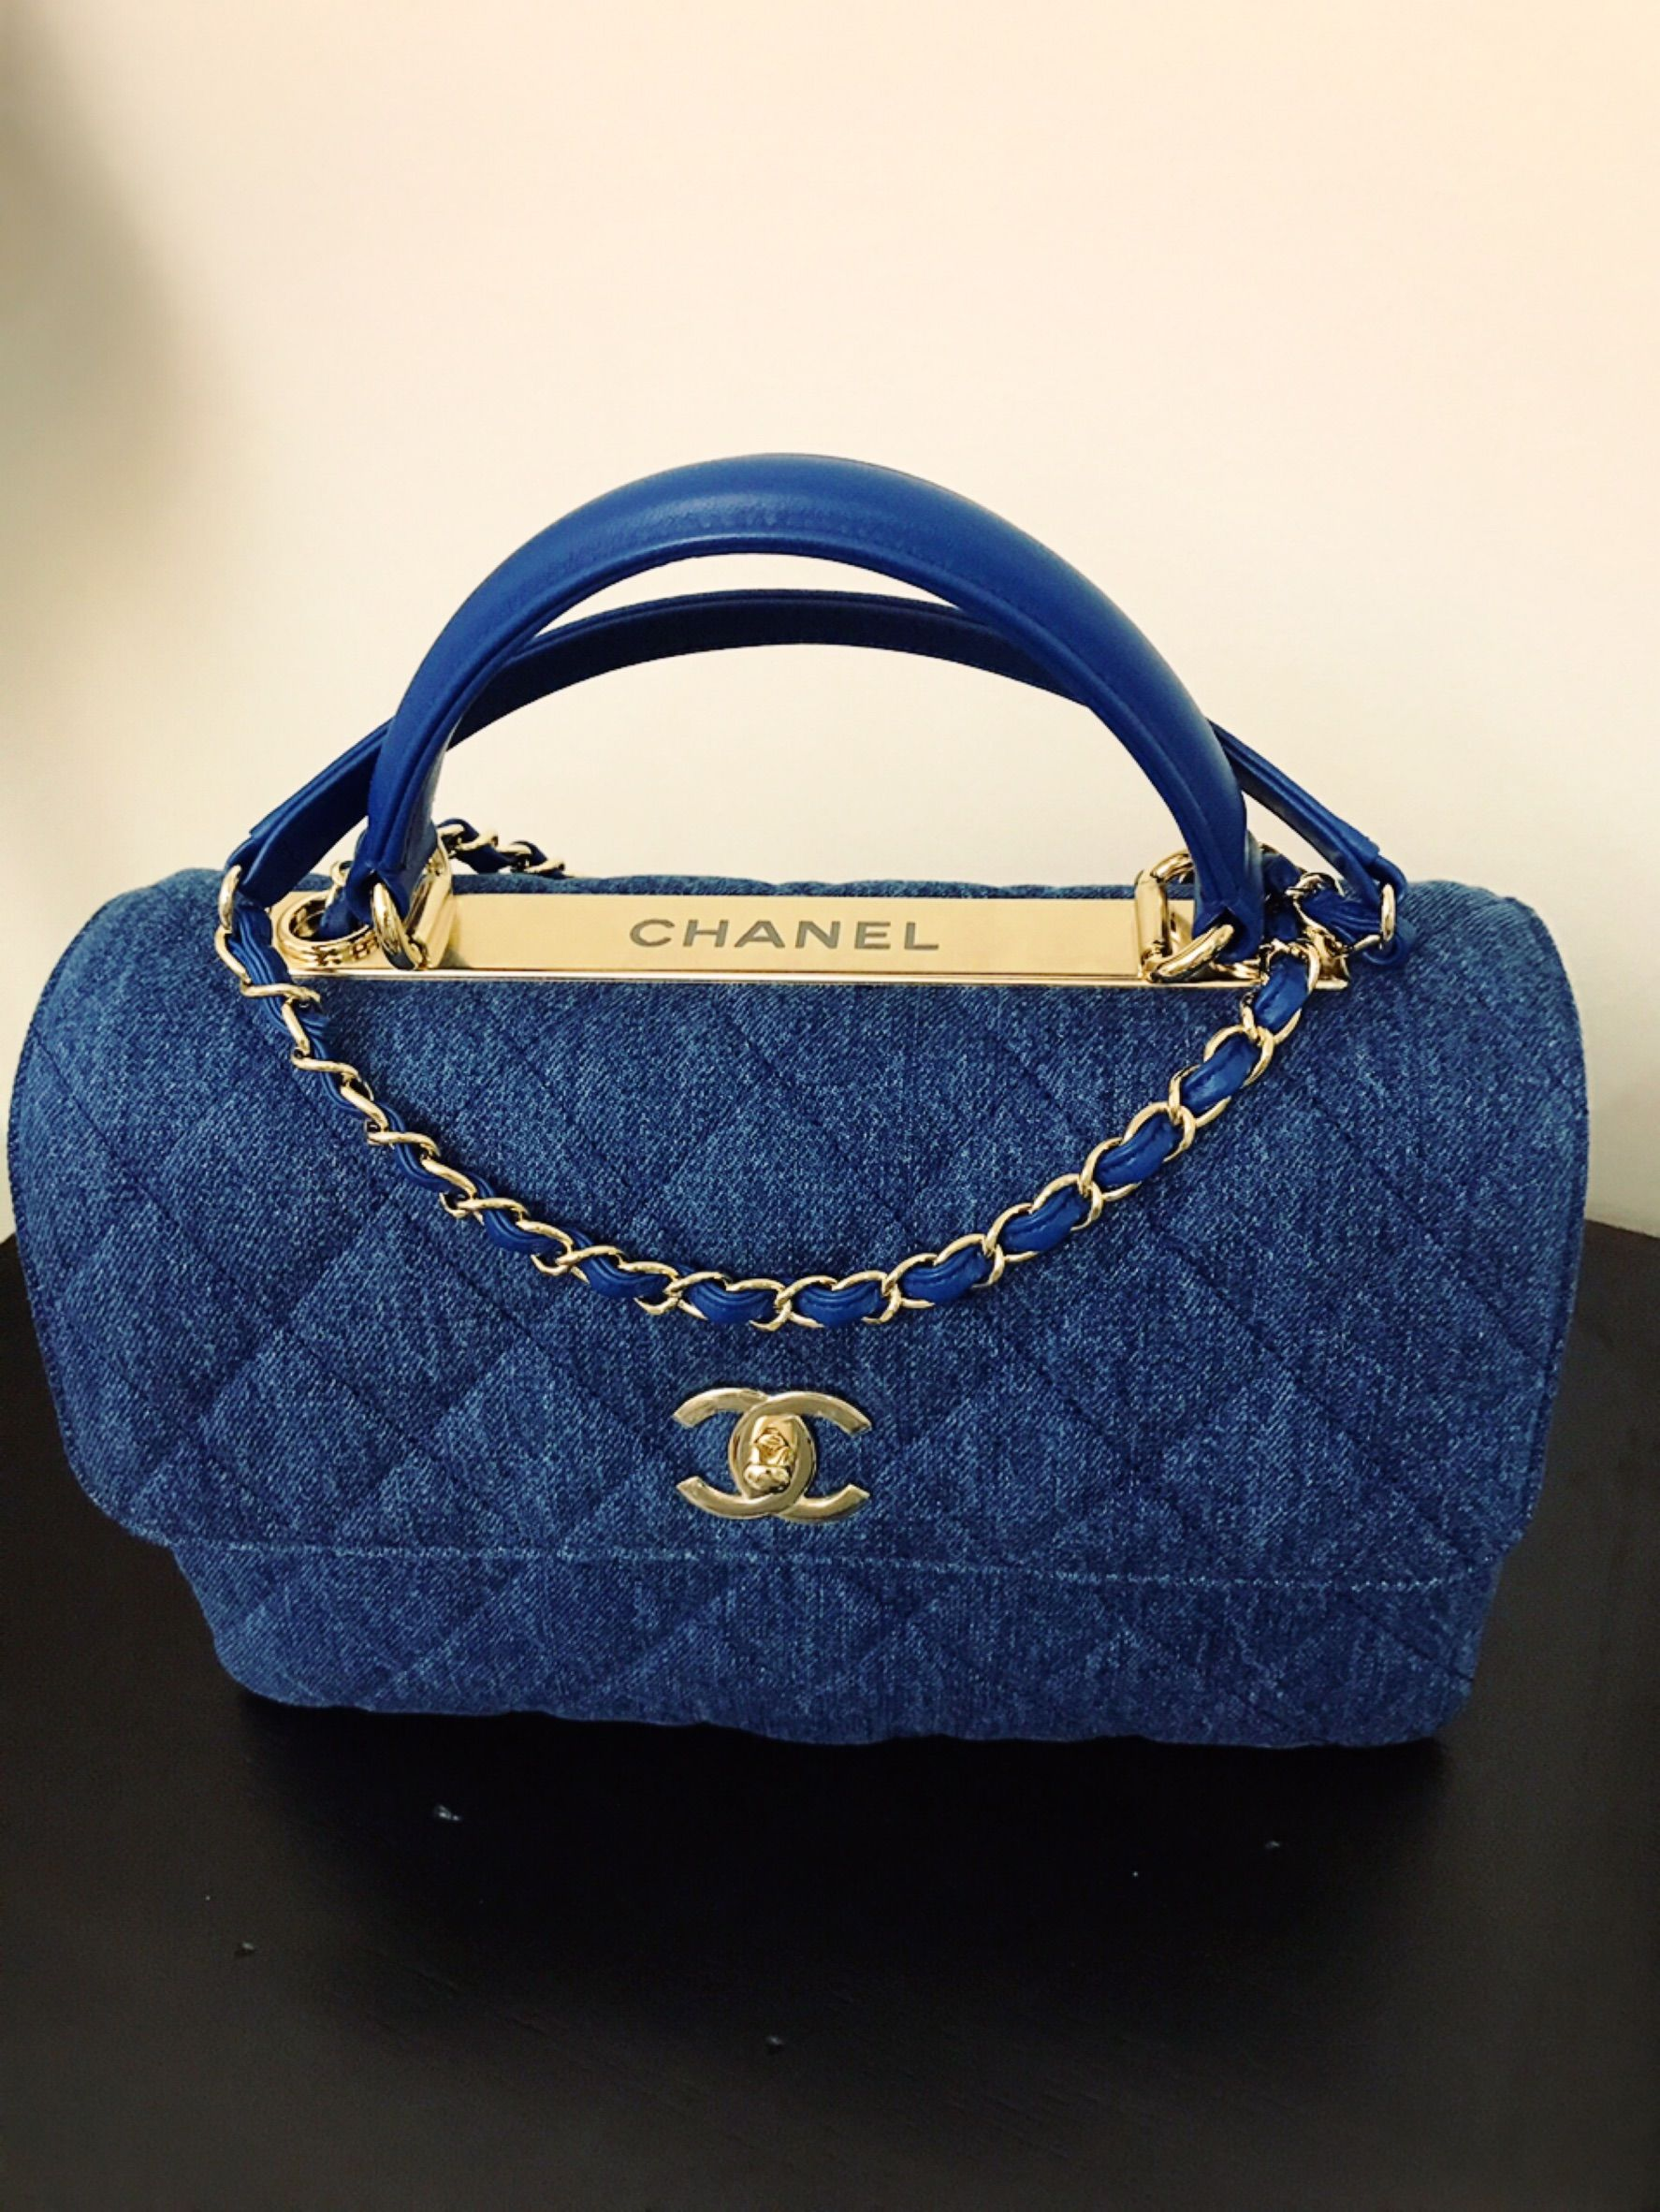 Chanel Trendy Cc Denim Bag D Art 2017 In Style Light Weight With Rooms